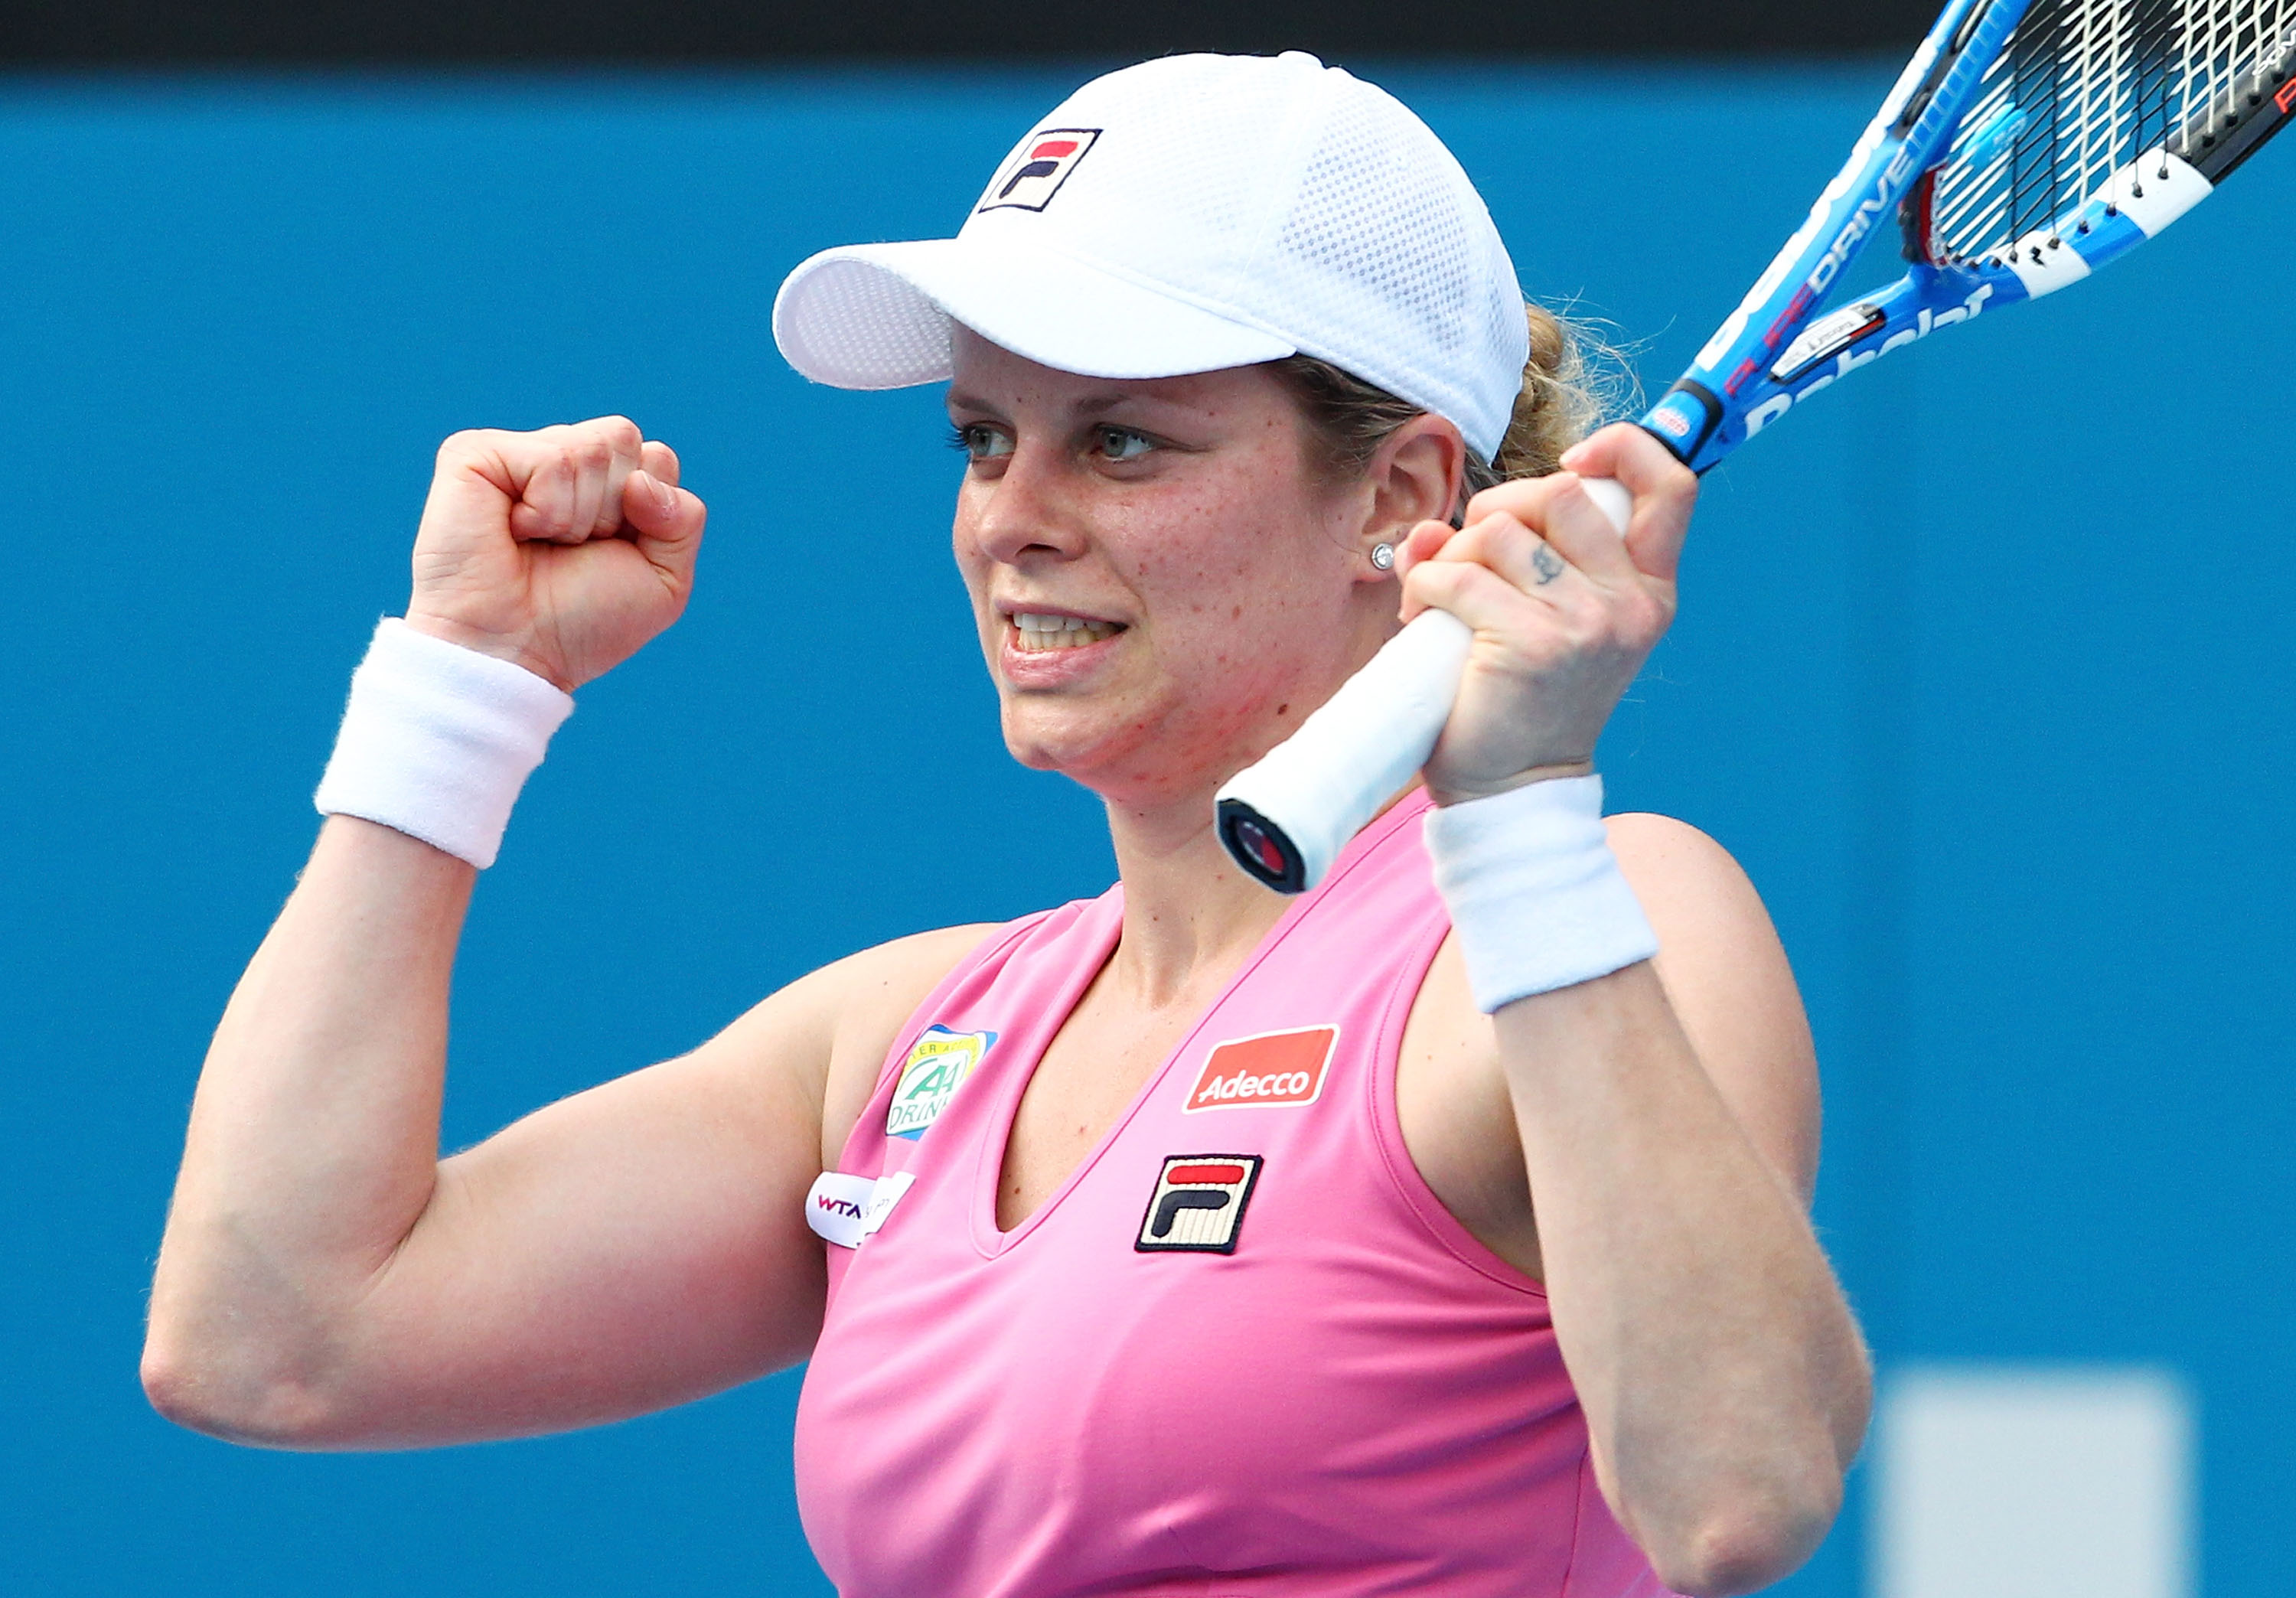 SYDNEY, AUSTRALIA - JANUARY 13:  Kim Clijsters of Belgium celebrates winning her match against Alisa Kleybanova of Russia during day five of the 2011 Medibank International at Sydney Olympic Park Tennis Centre on January 13, 2011 in Sydney, Australia.  (P